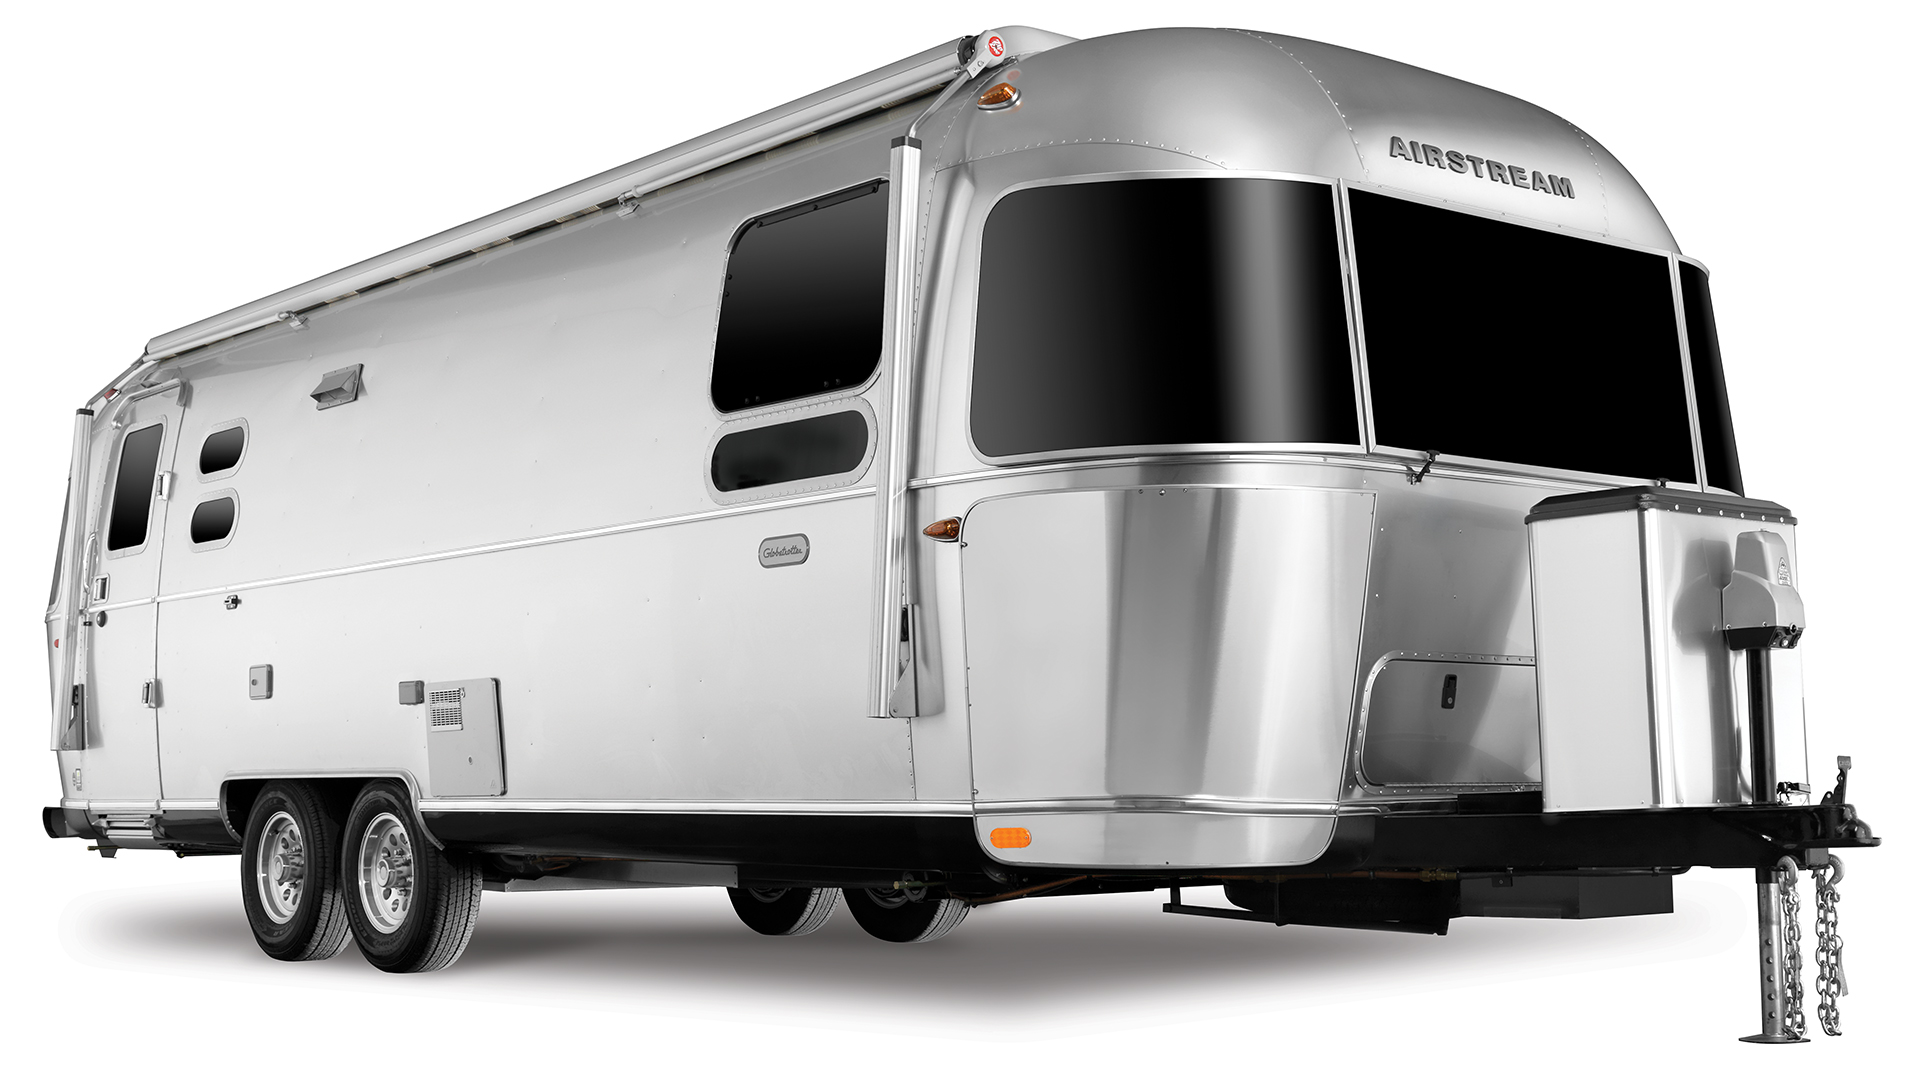 Airstream Globetrotter 27FB Queen Exterior